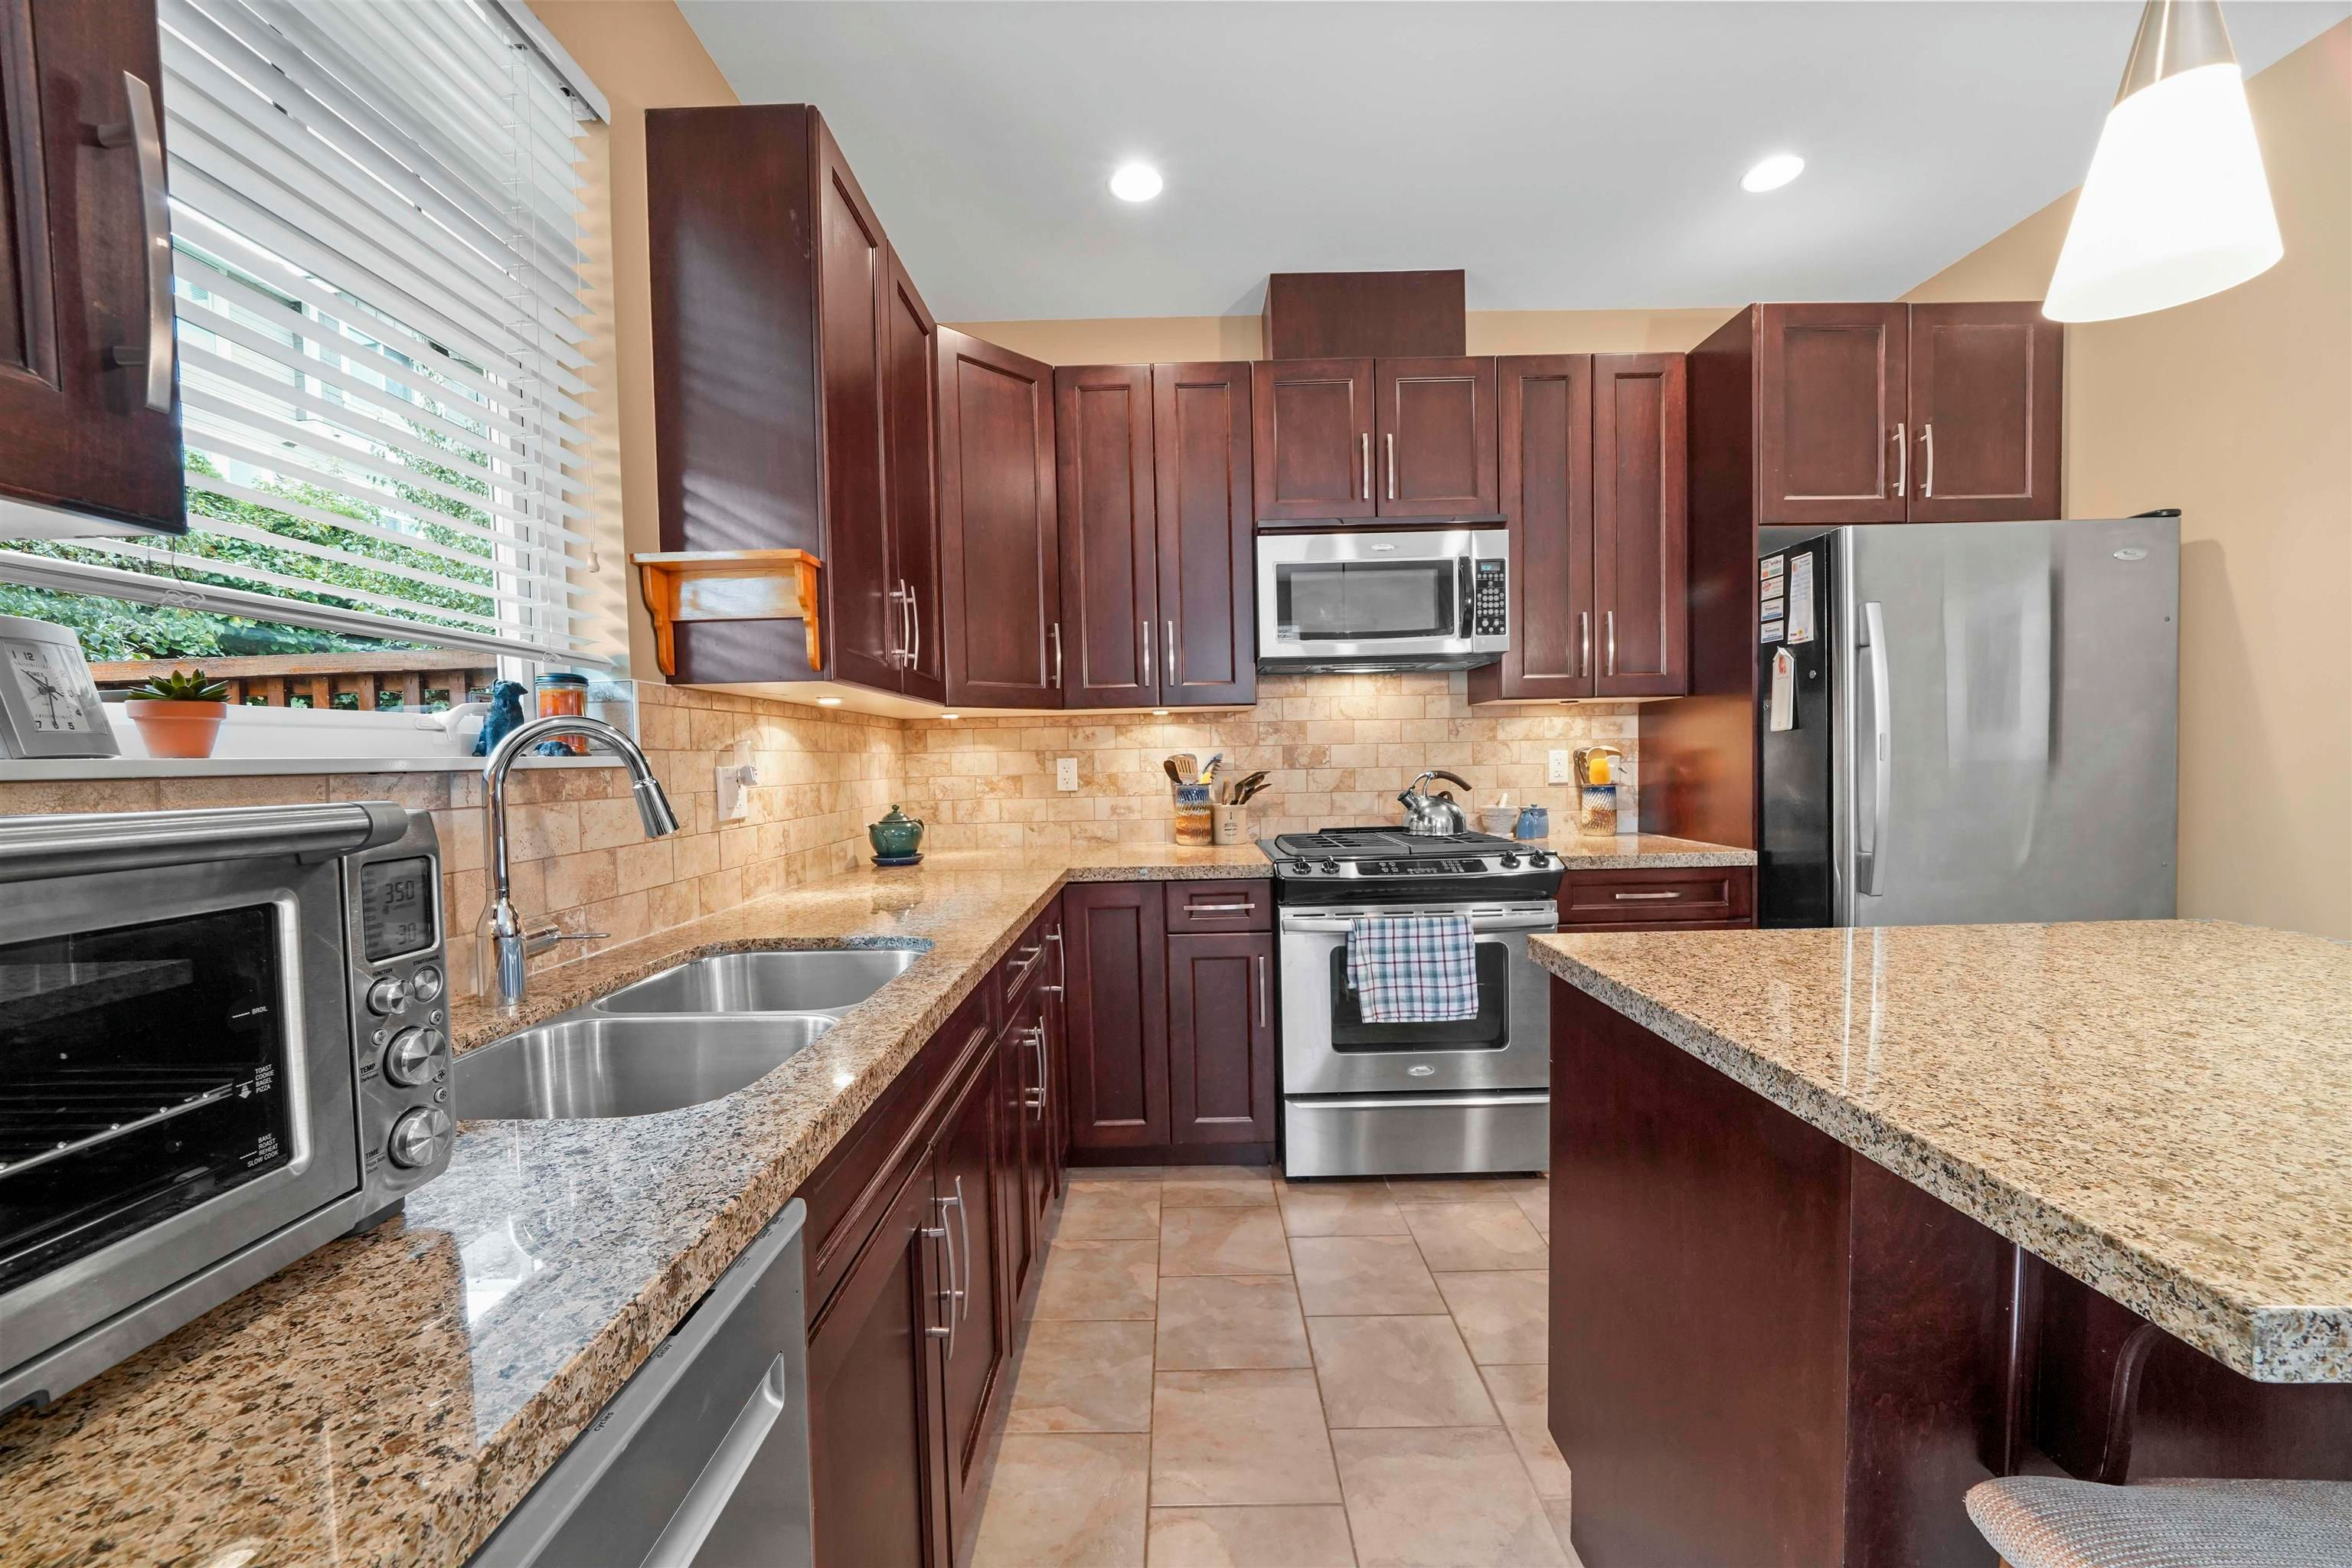 """Main Photo: 8 2979 156 Street in Surrey: Grandview Surrey Townhouse for sale in """"ENCLAVE"""" (South Surrey White Rock)  : MLS®# R2623582"""